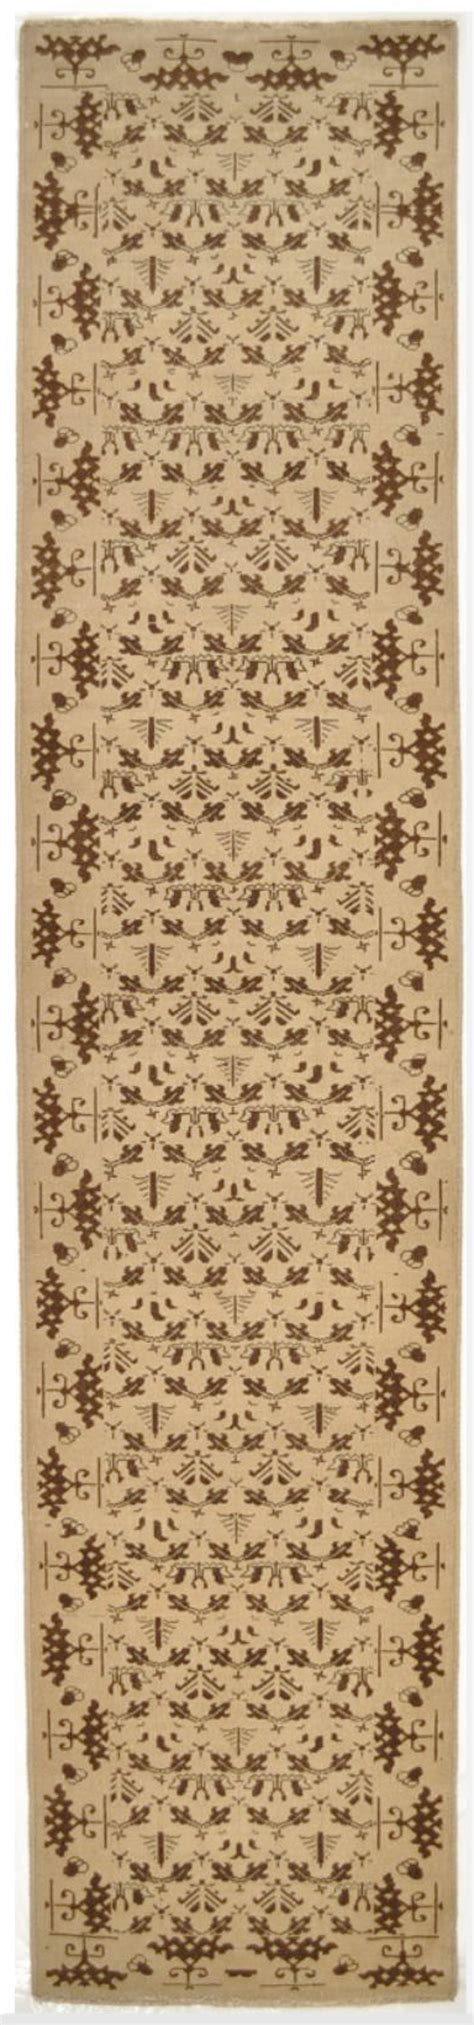 Handmade Runner Rugs - antique look handmade runner rug surena rugs